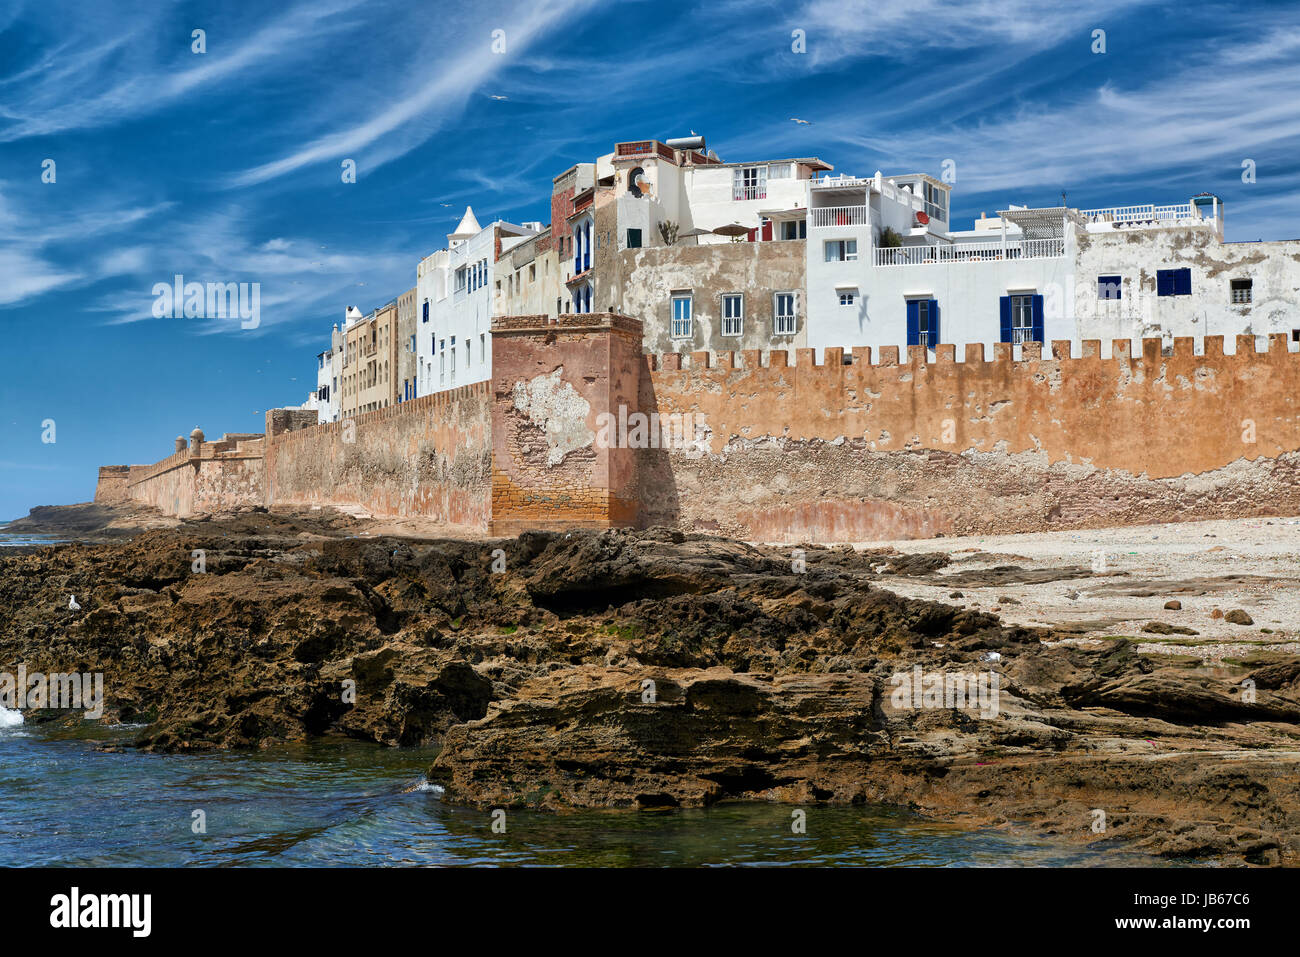 rampart and historical medina of Essaouira seen from ocean site, UNESCO world heritage site, Morocco, Africa - Stock Image